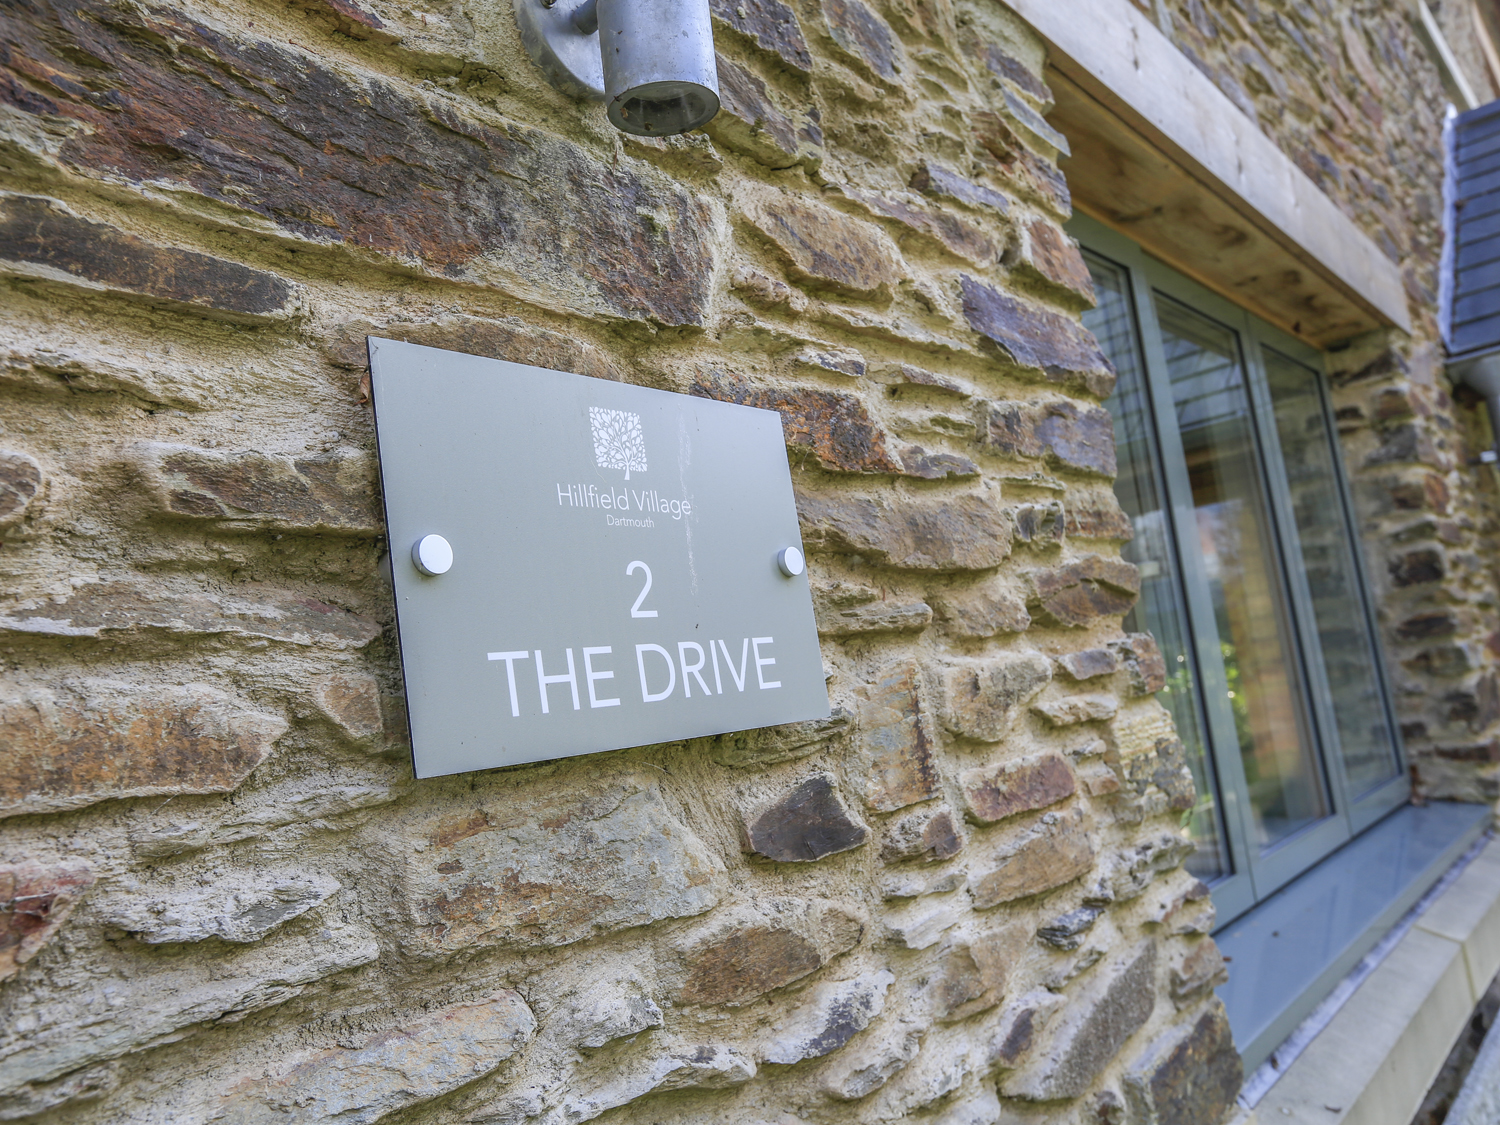 2 The Drive, Hillfield Village Image 8